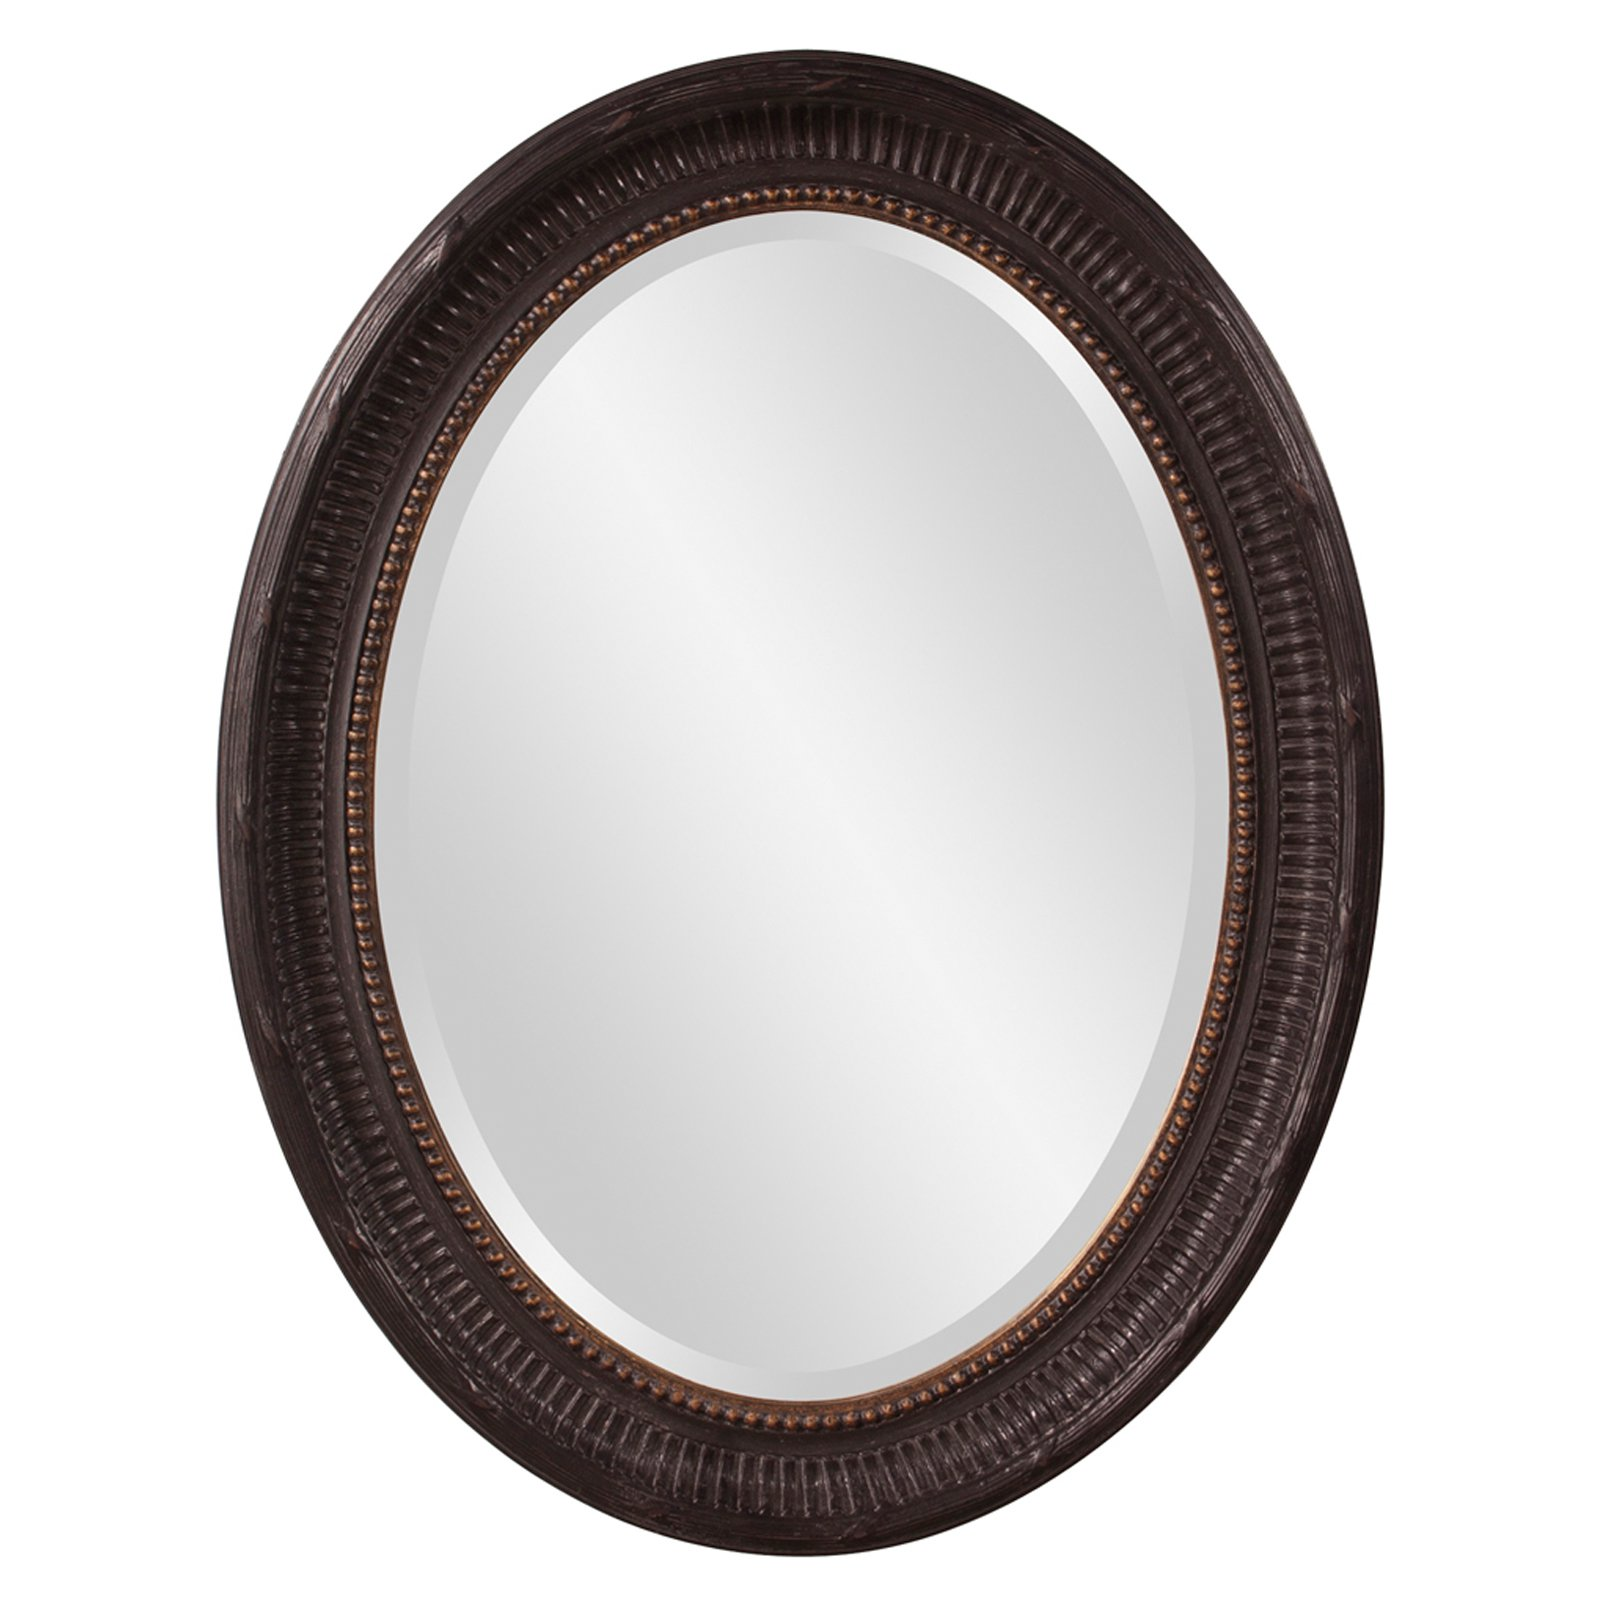 Elizabeth Austin Nero Oval Mirror 26W x 34H in. by Howard Elliott